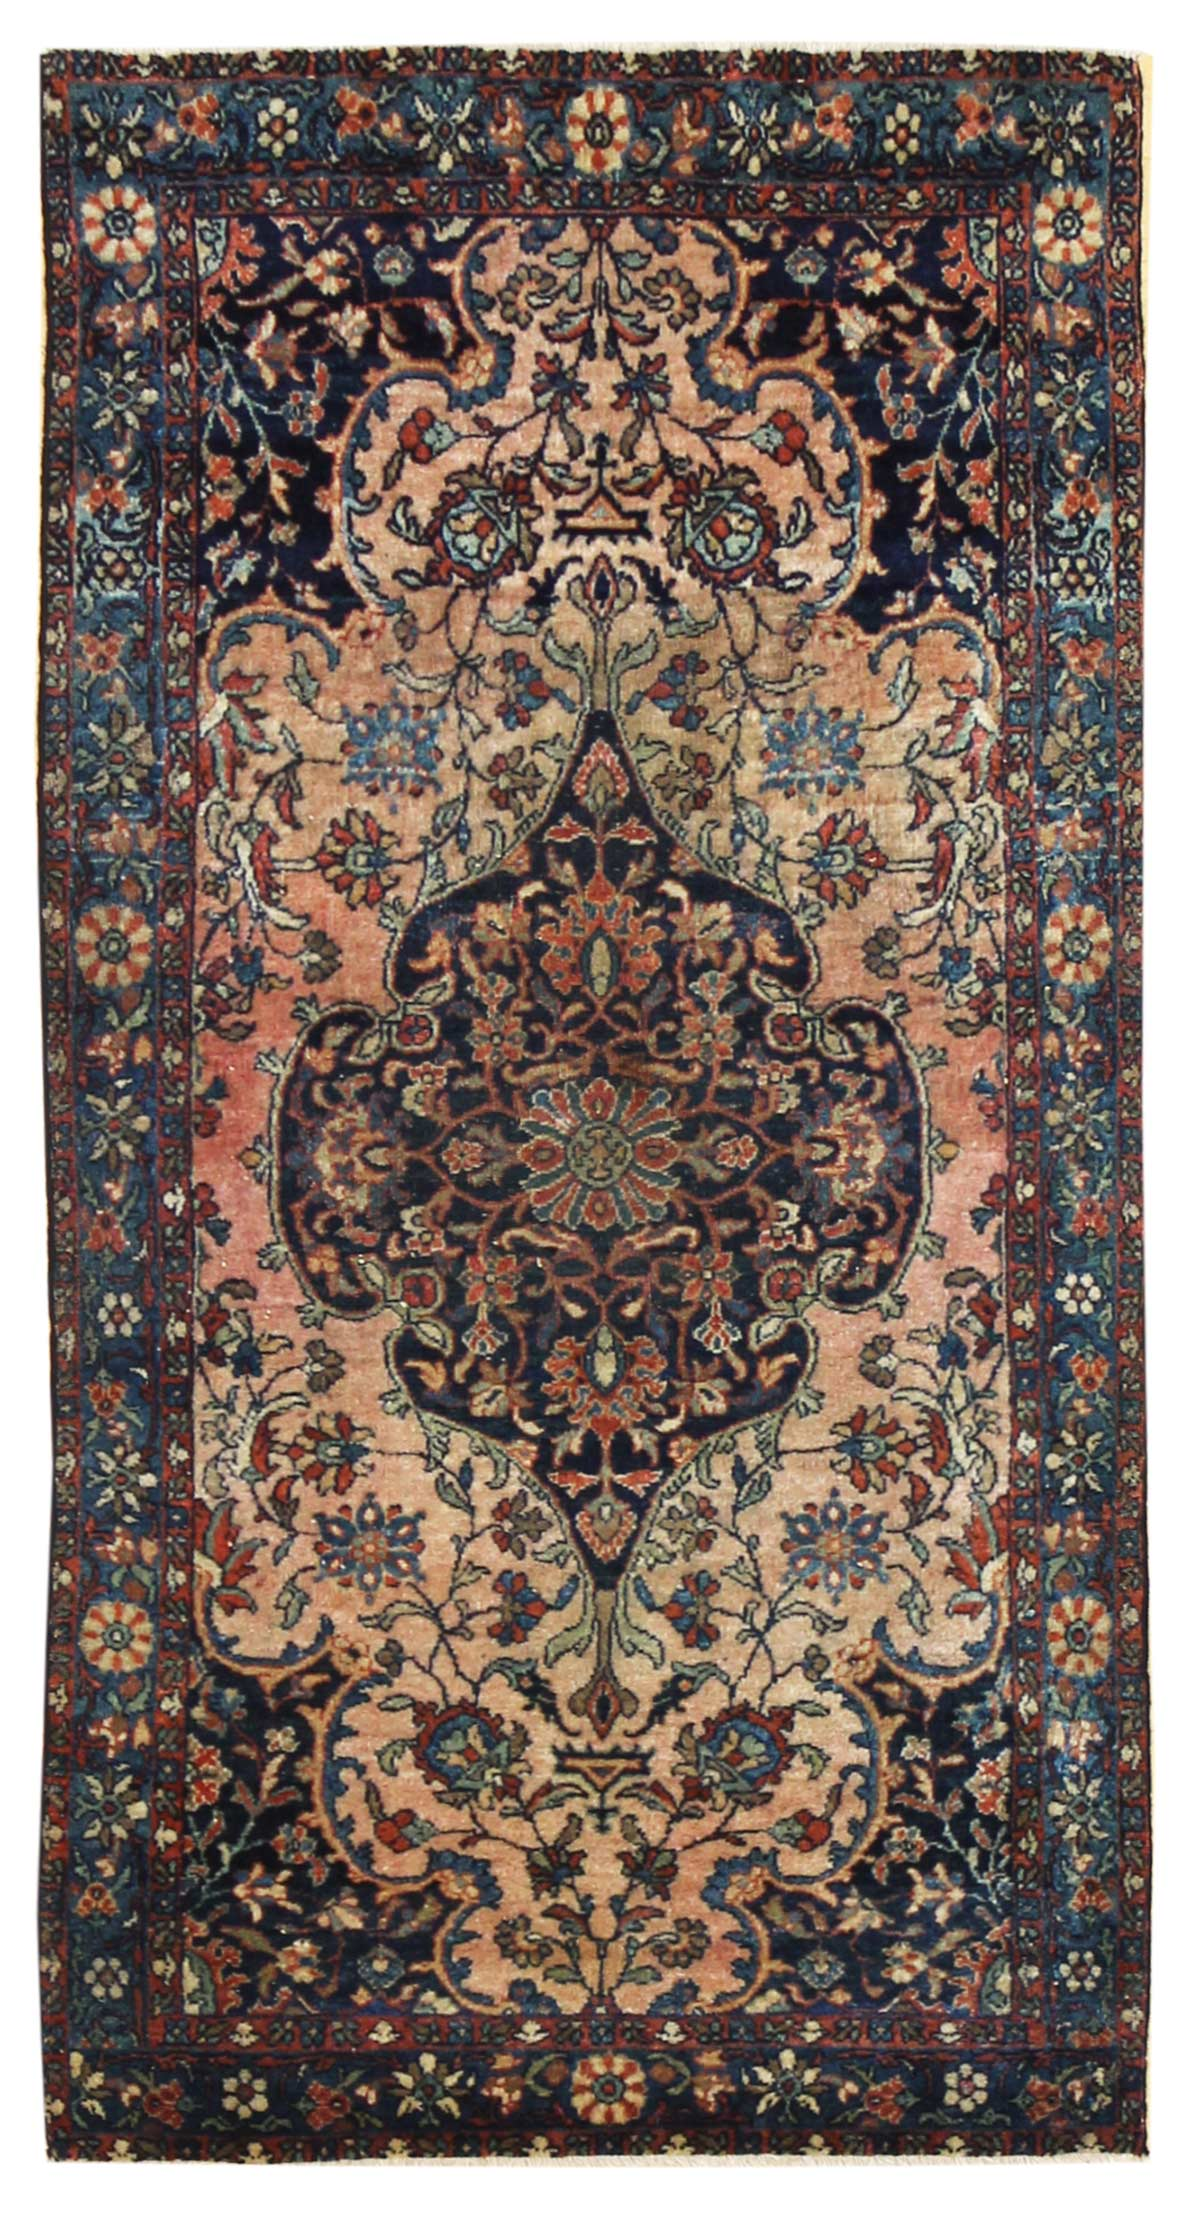 Antique Ferahan Sarouk Handwoven Traditional Rug